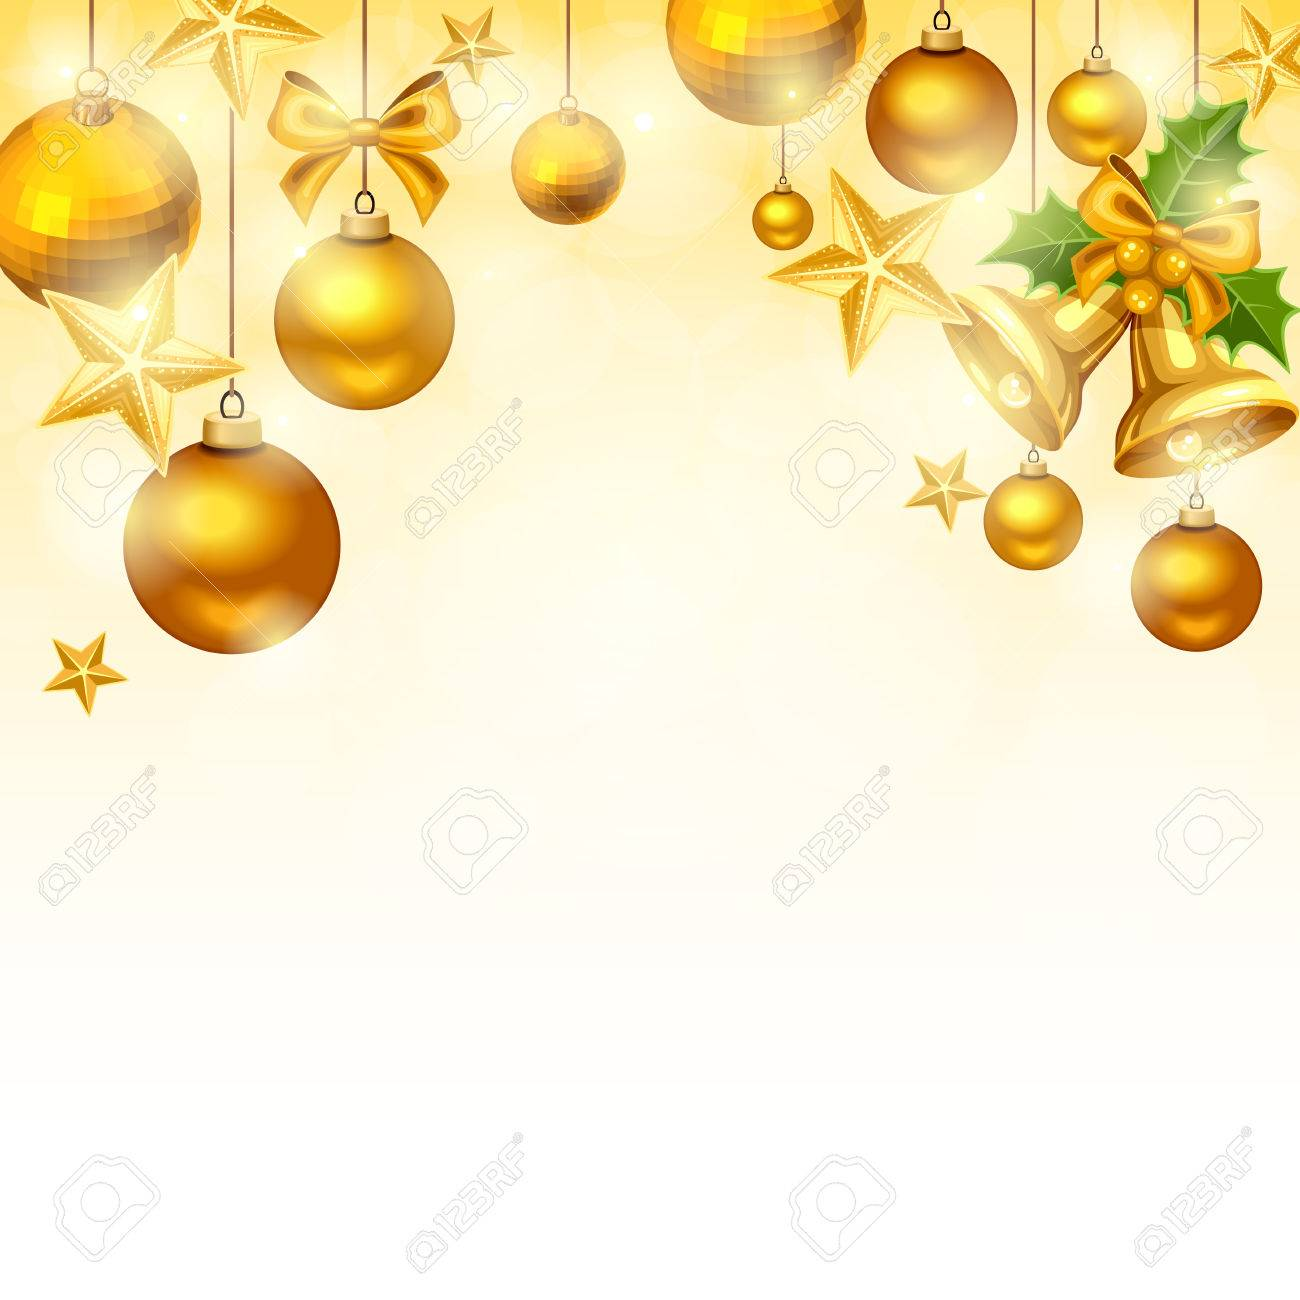 Christmas Background Images Gold.Vector Christmas Background With Gold Balls Bells Stars And